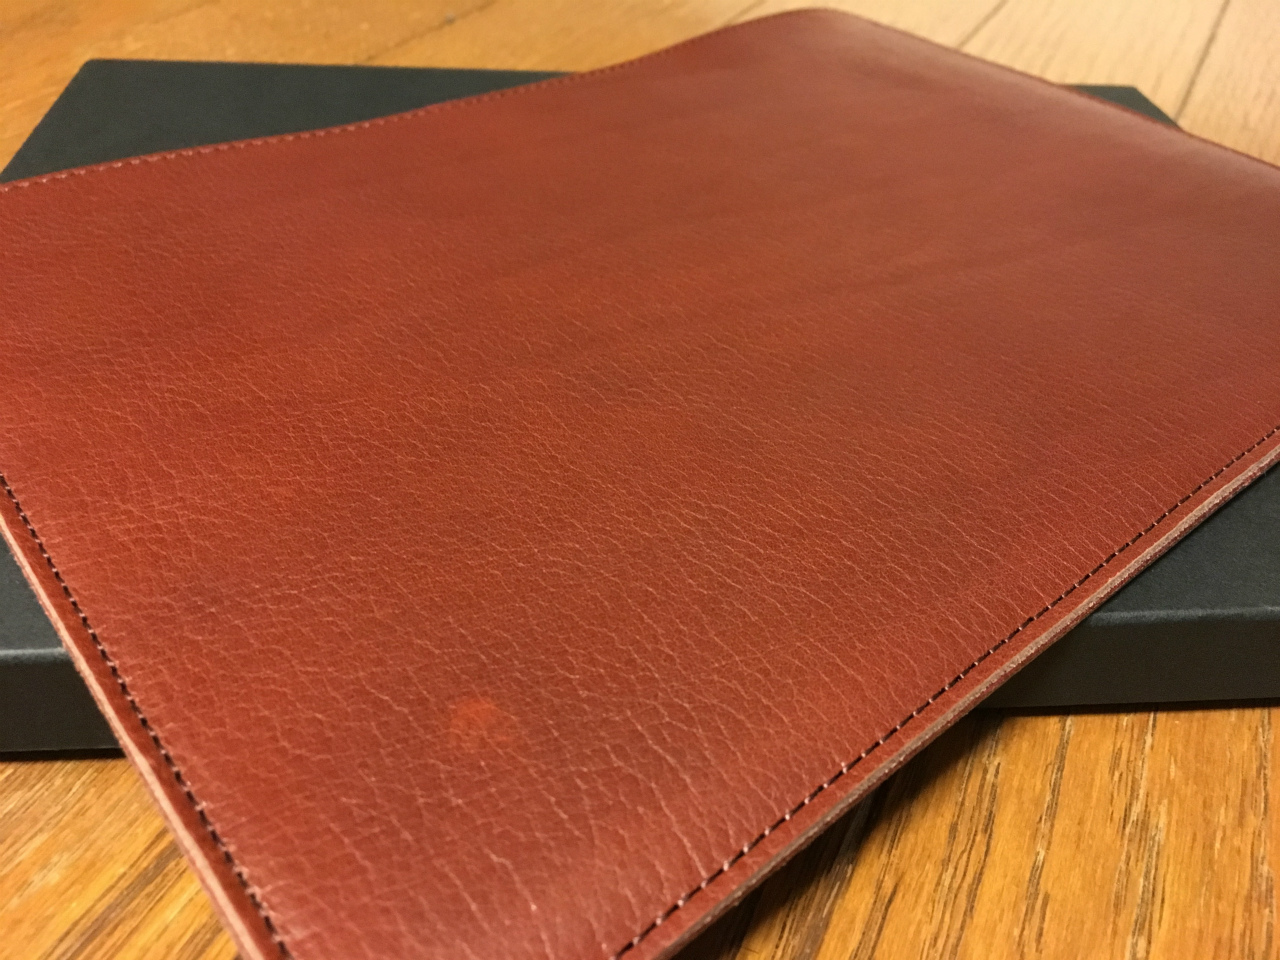 kunitachi-leather-sleeve-for-ipadpro-02